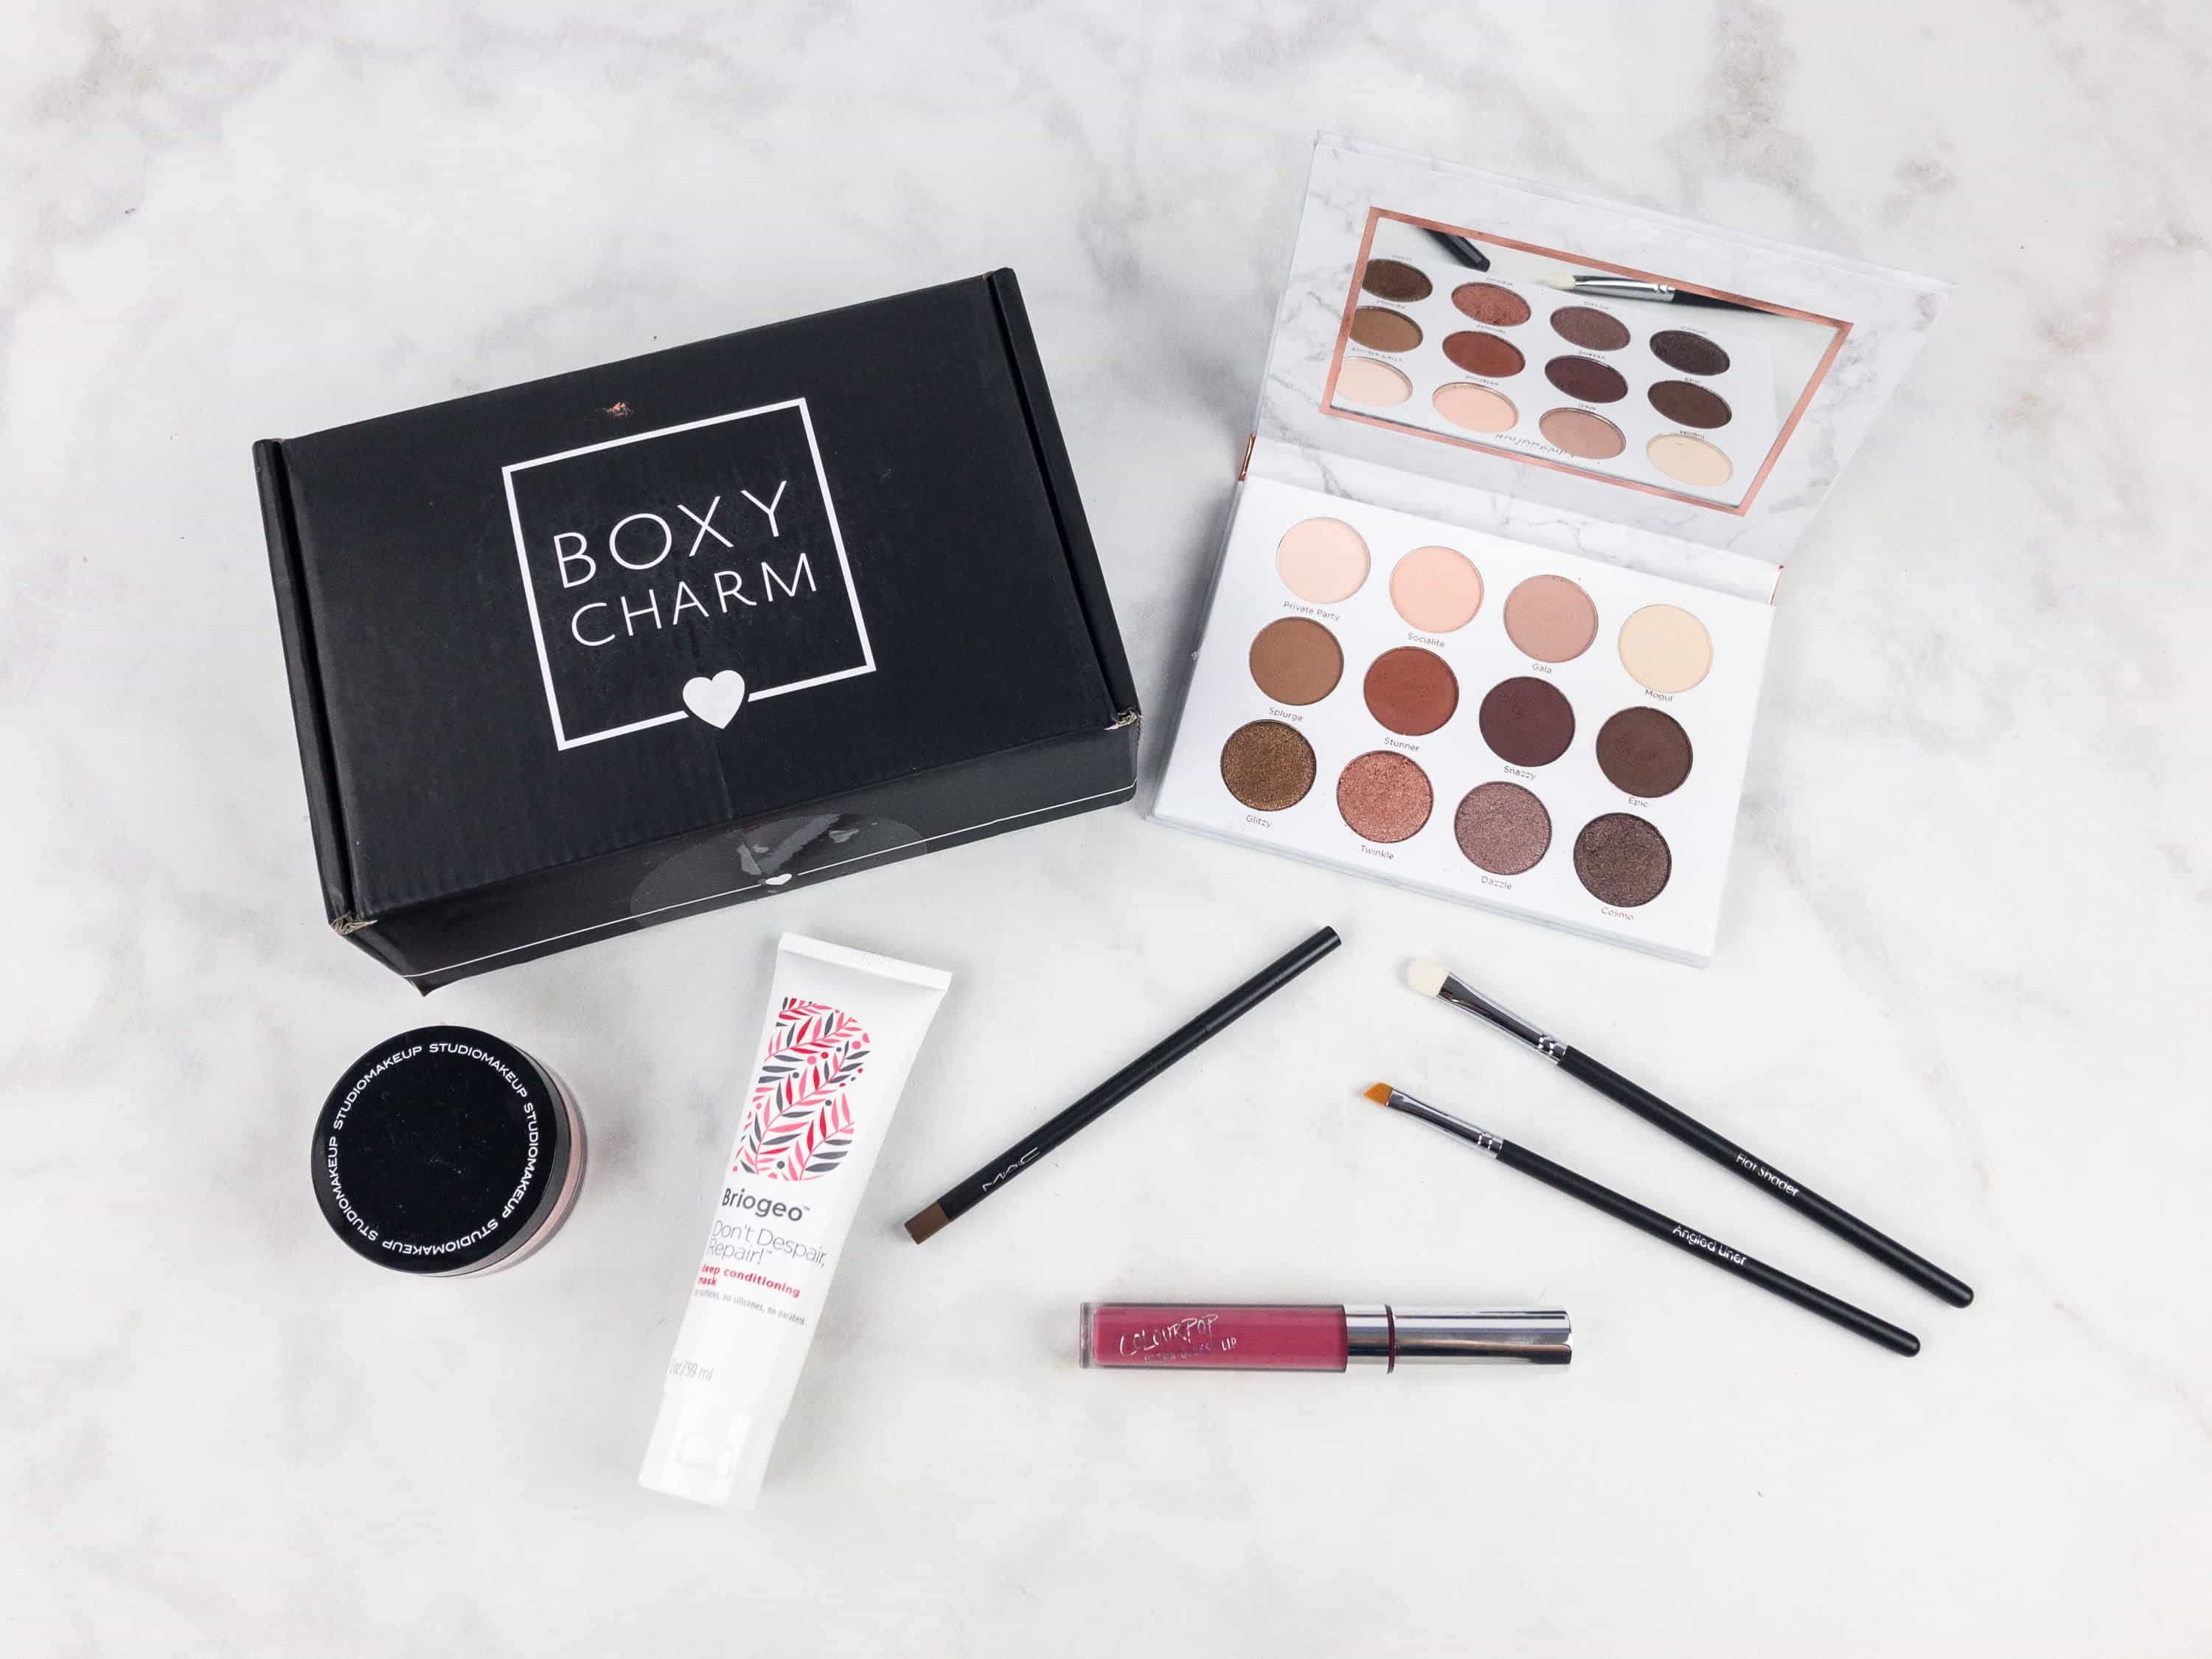 BOXYCHARM September 2017 Subscription Box Review